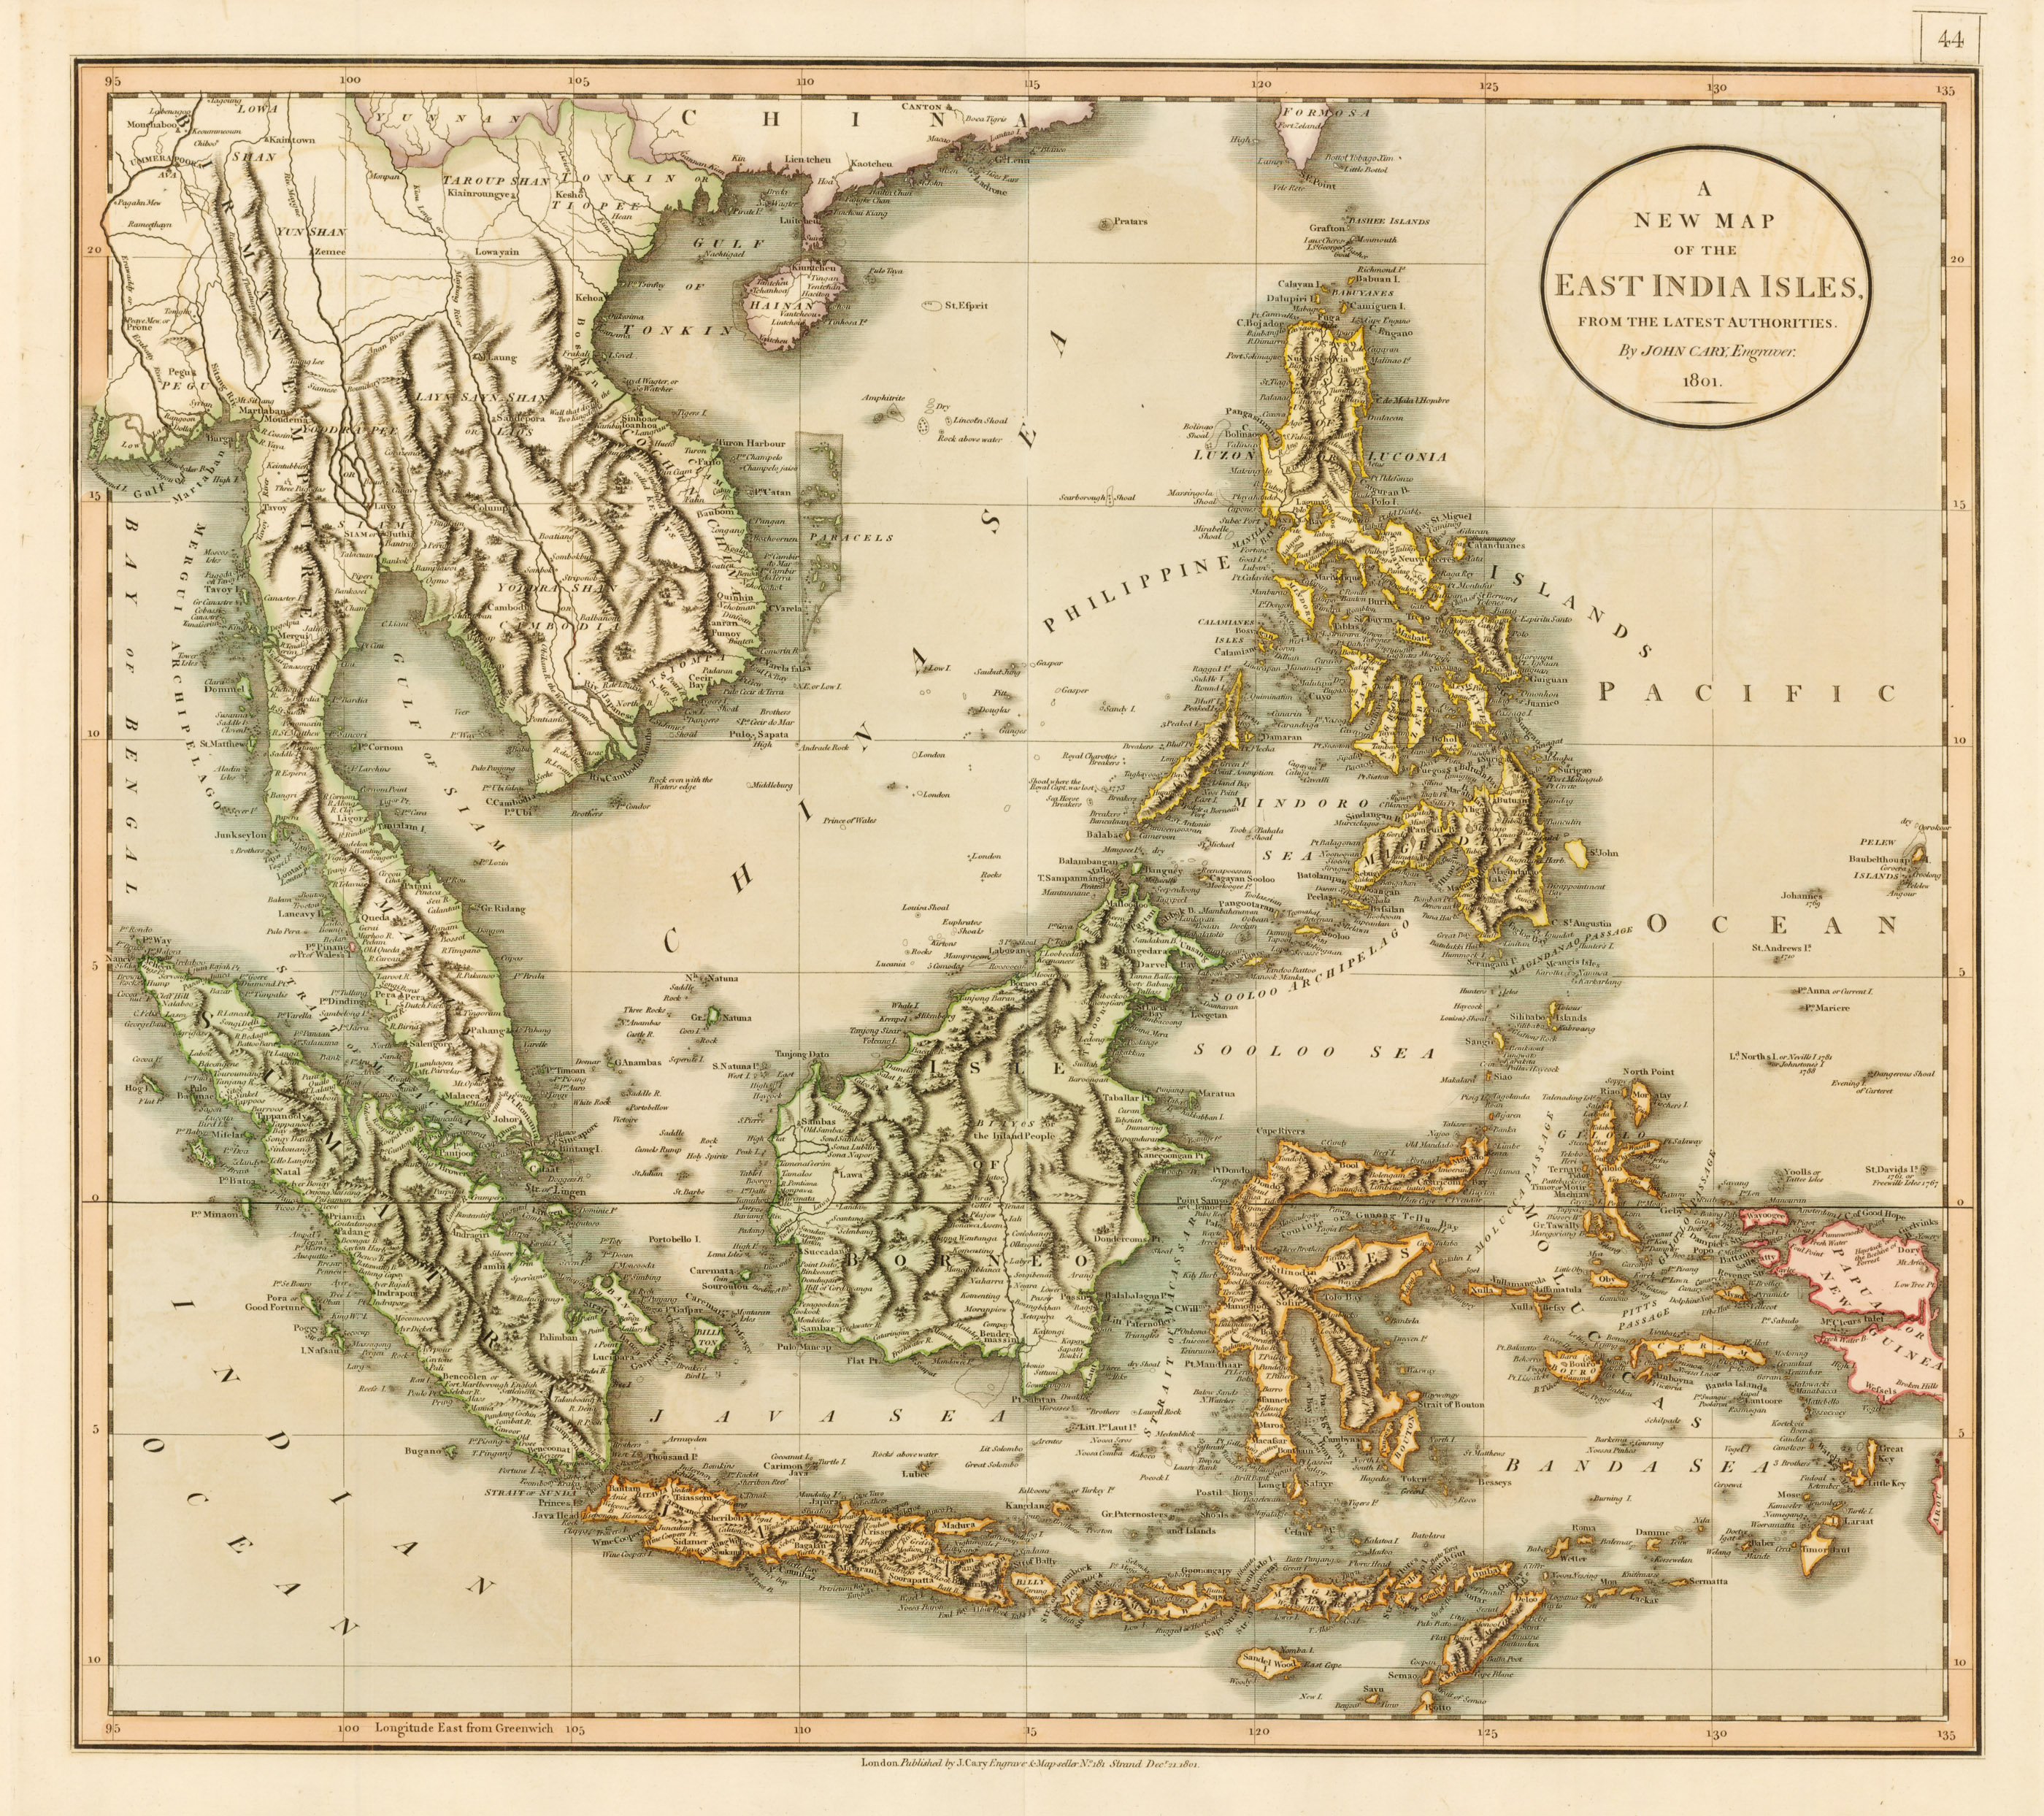 The New Map Of The World.1801 A New Map Of The East India Isles